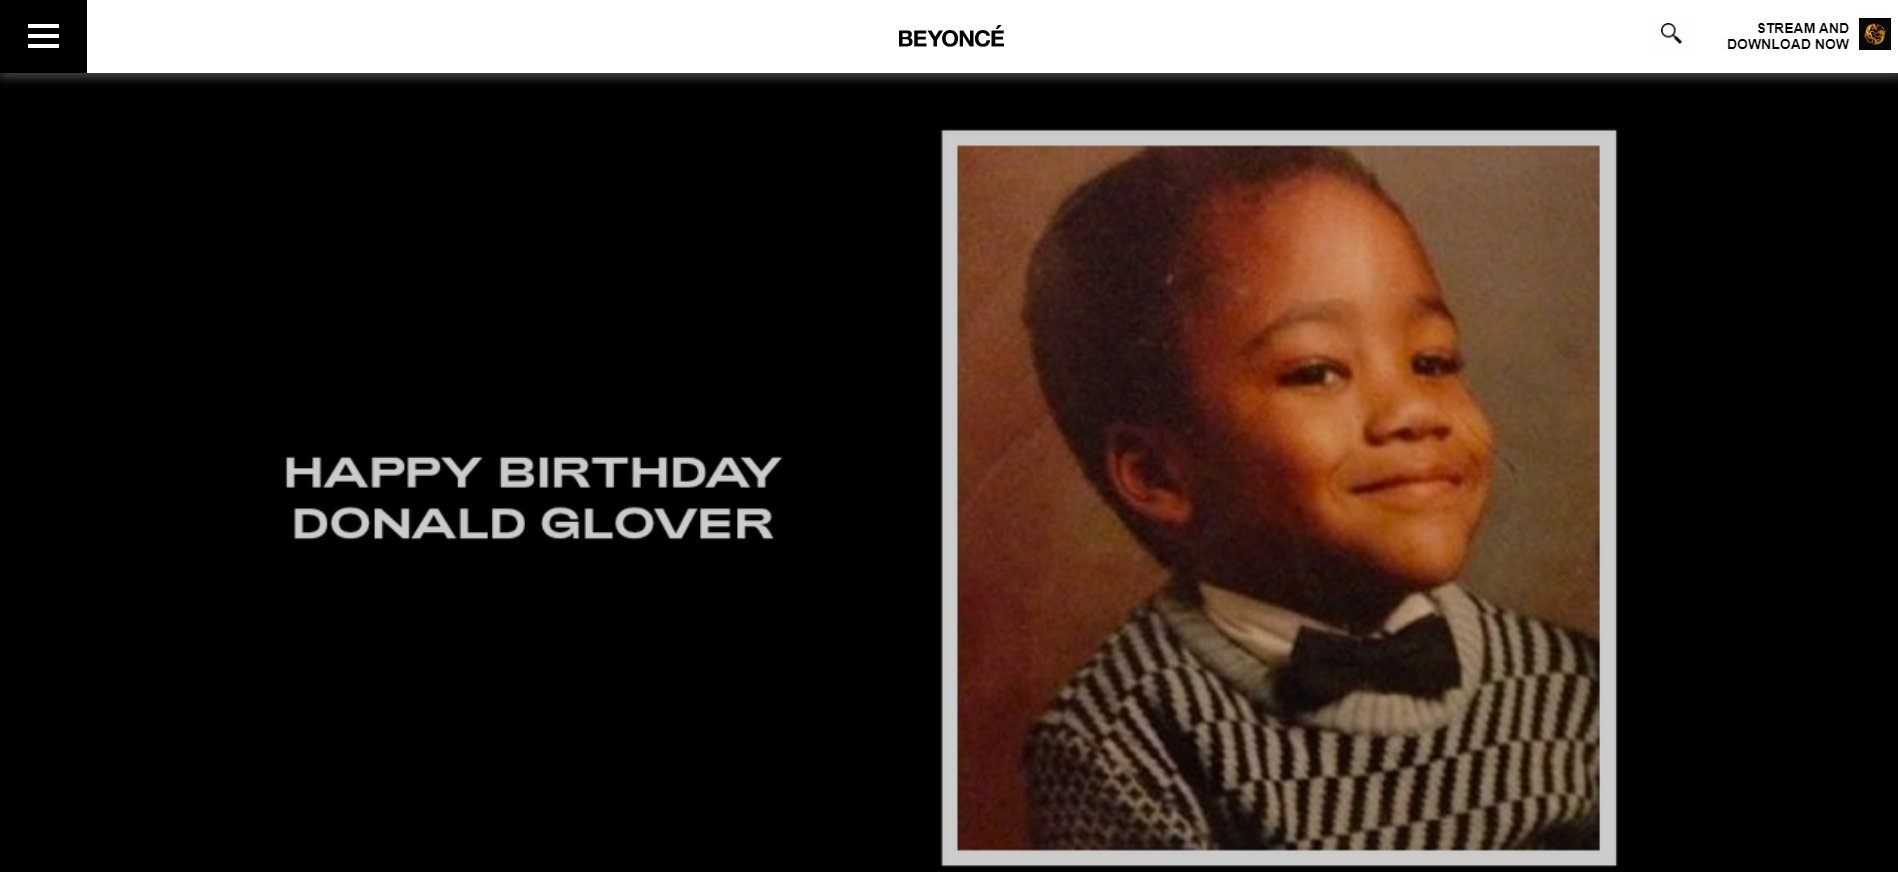 Beyonce wishing our boy a happy birthday on her website